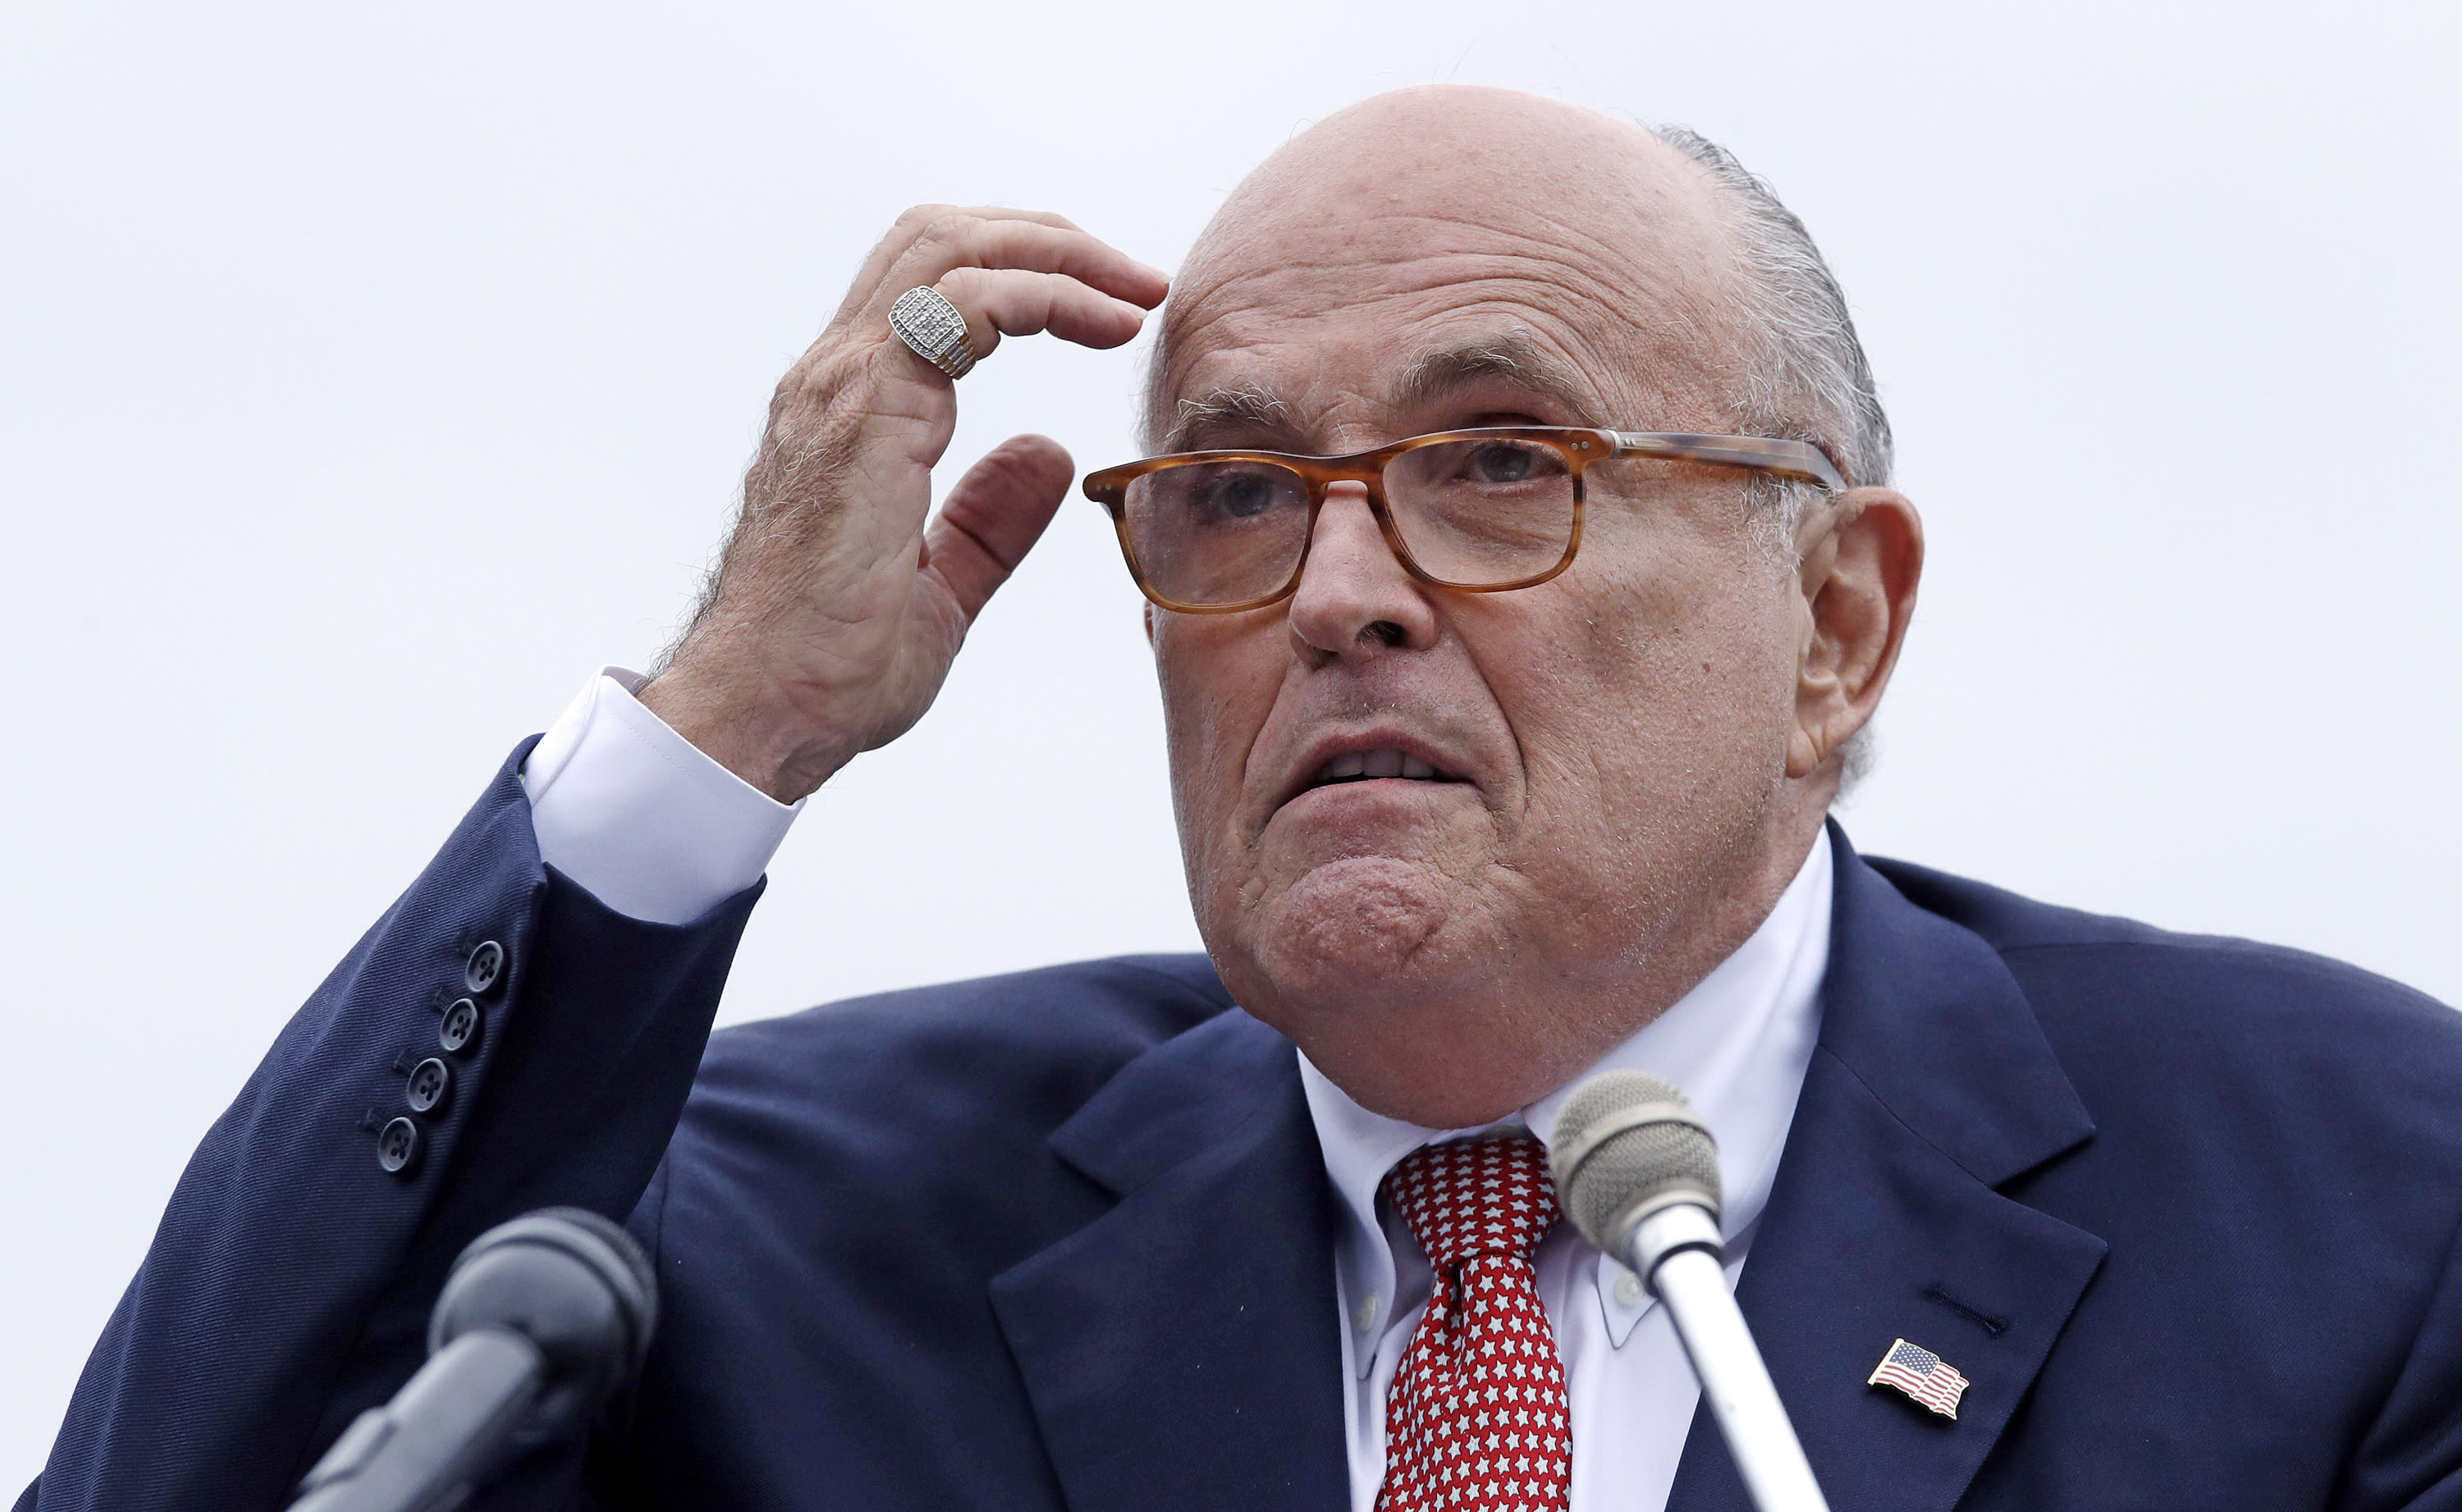 """FILE - In this Aug. 1, 2018 file photo, Rudy Giuliani, an attorney for President Donald Trump, addresses a gathering during a campaign event for Eddie Edwards, who is running for the U.S. Congress, in Portsmouth, N.H. Lawyers speaking publicly on behalf of President Donald Trump and his longtime """"fixer""""-turned-foe Michael Cohen have been fumbling the facts of late. Giuliani recently caused a stir regarding the possibility of Trump granting a pardon to former campaign chairman Paul Manafort and Giuliani also has misspoken about the Trump Tower meeting. (AP Photo/Charles Krupa, File )"""